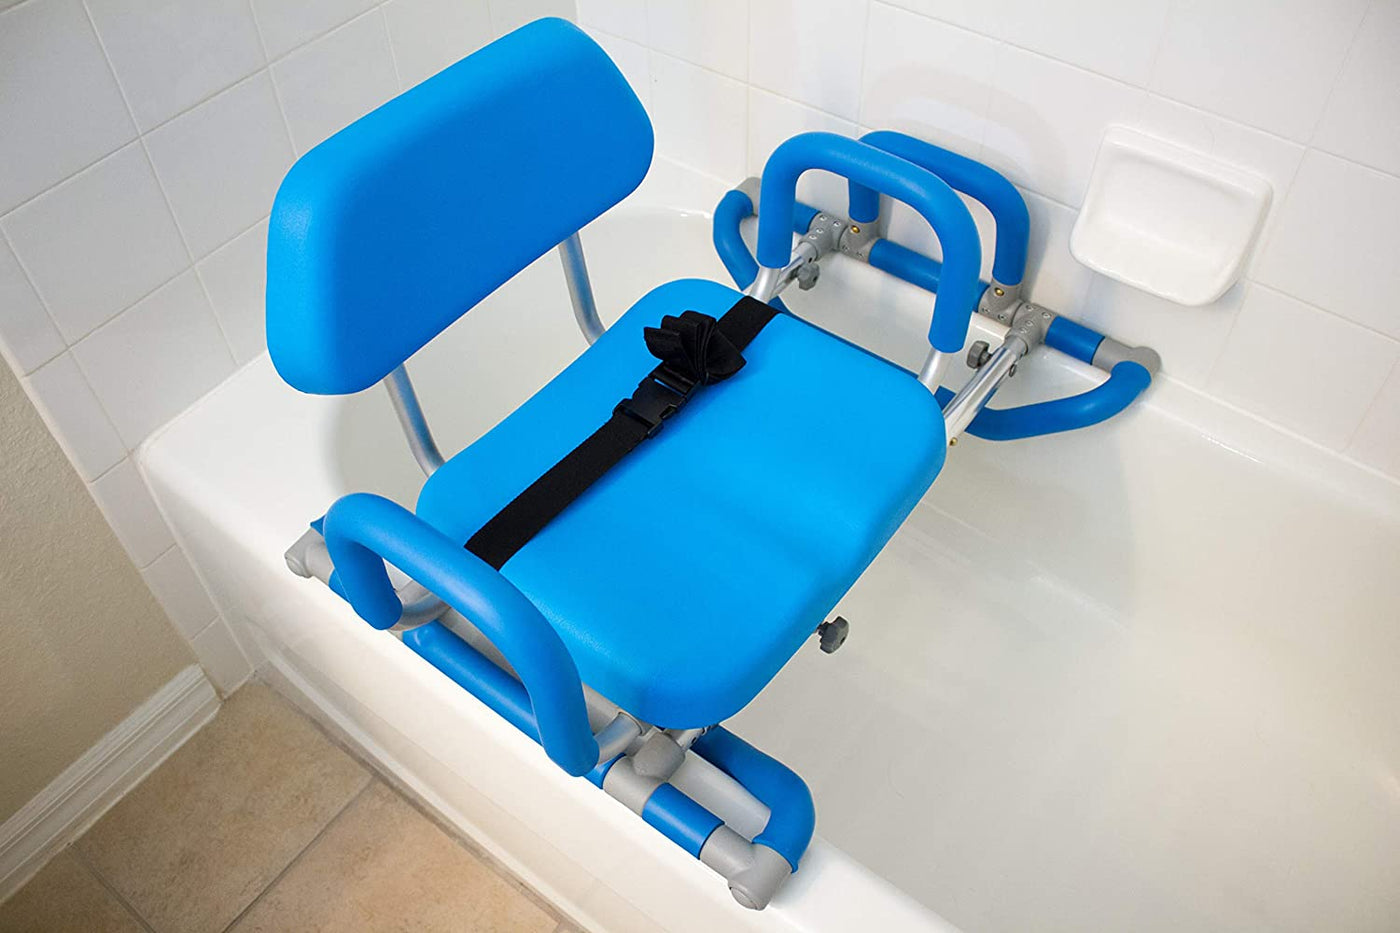 HydroSlide Sliding Bath Chair with Swivel Seat